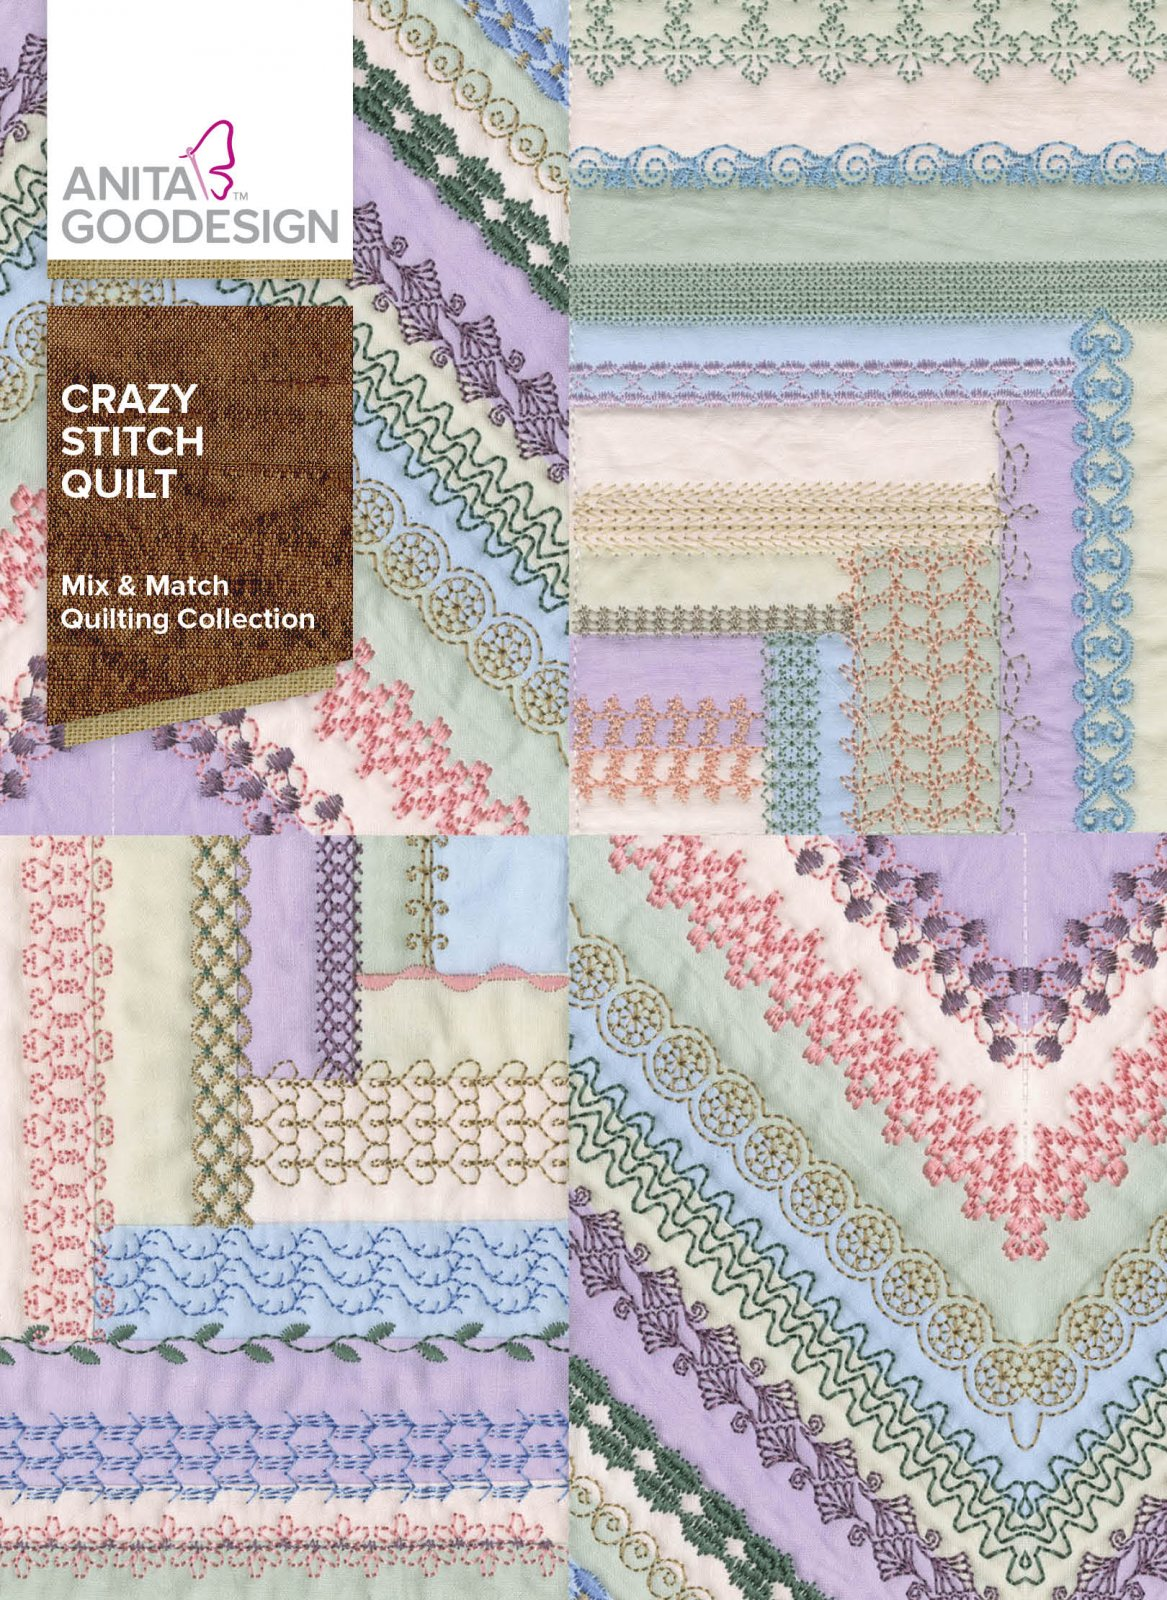 Anita Goodesign- Crazy Stitch Quilt